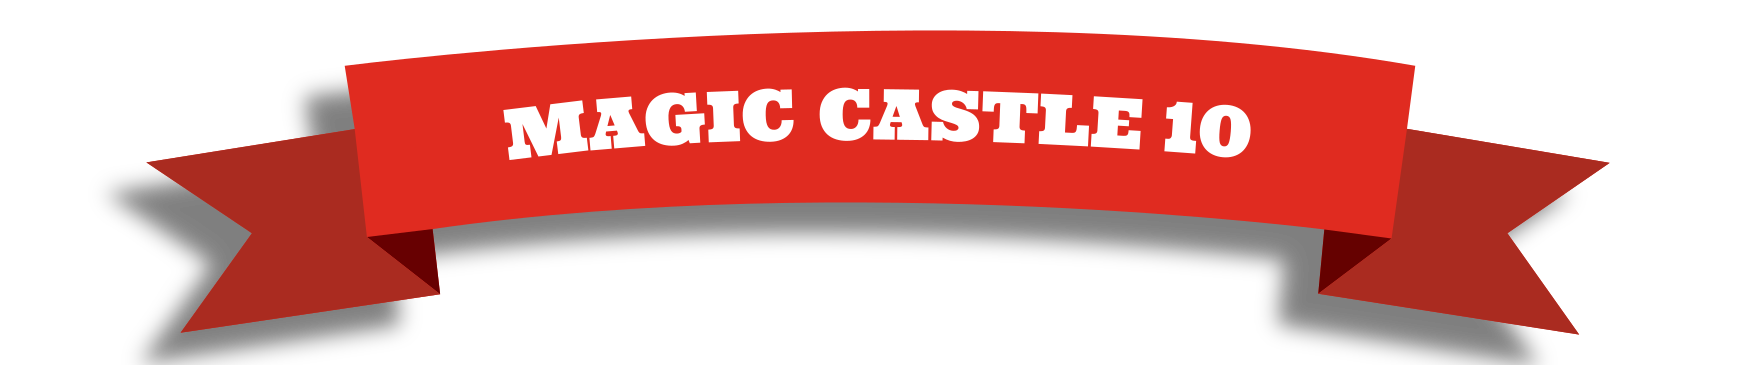 Magic Castle 10 - HighCountry Jumpers